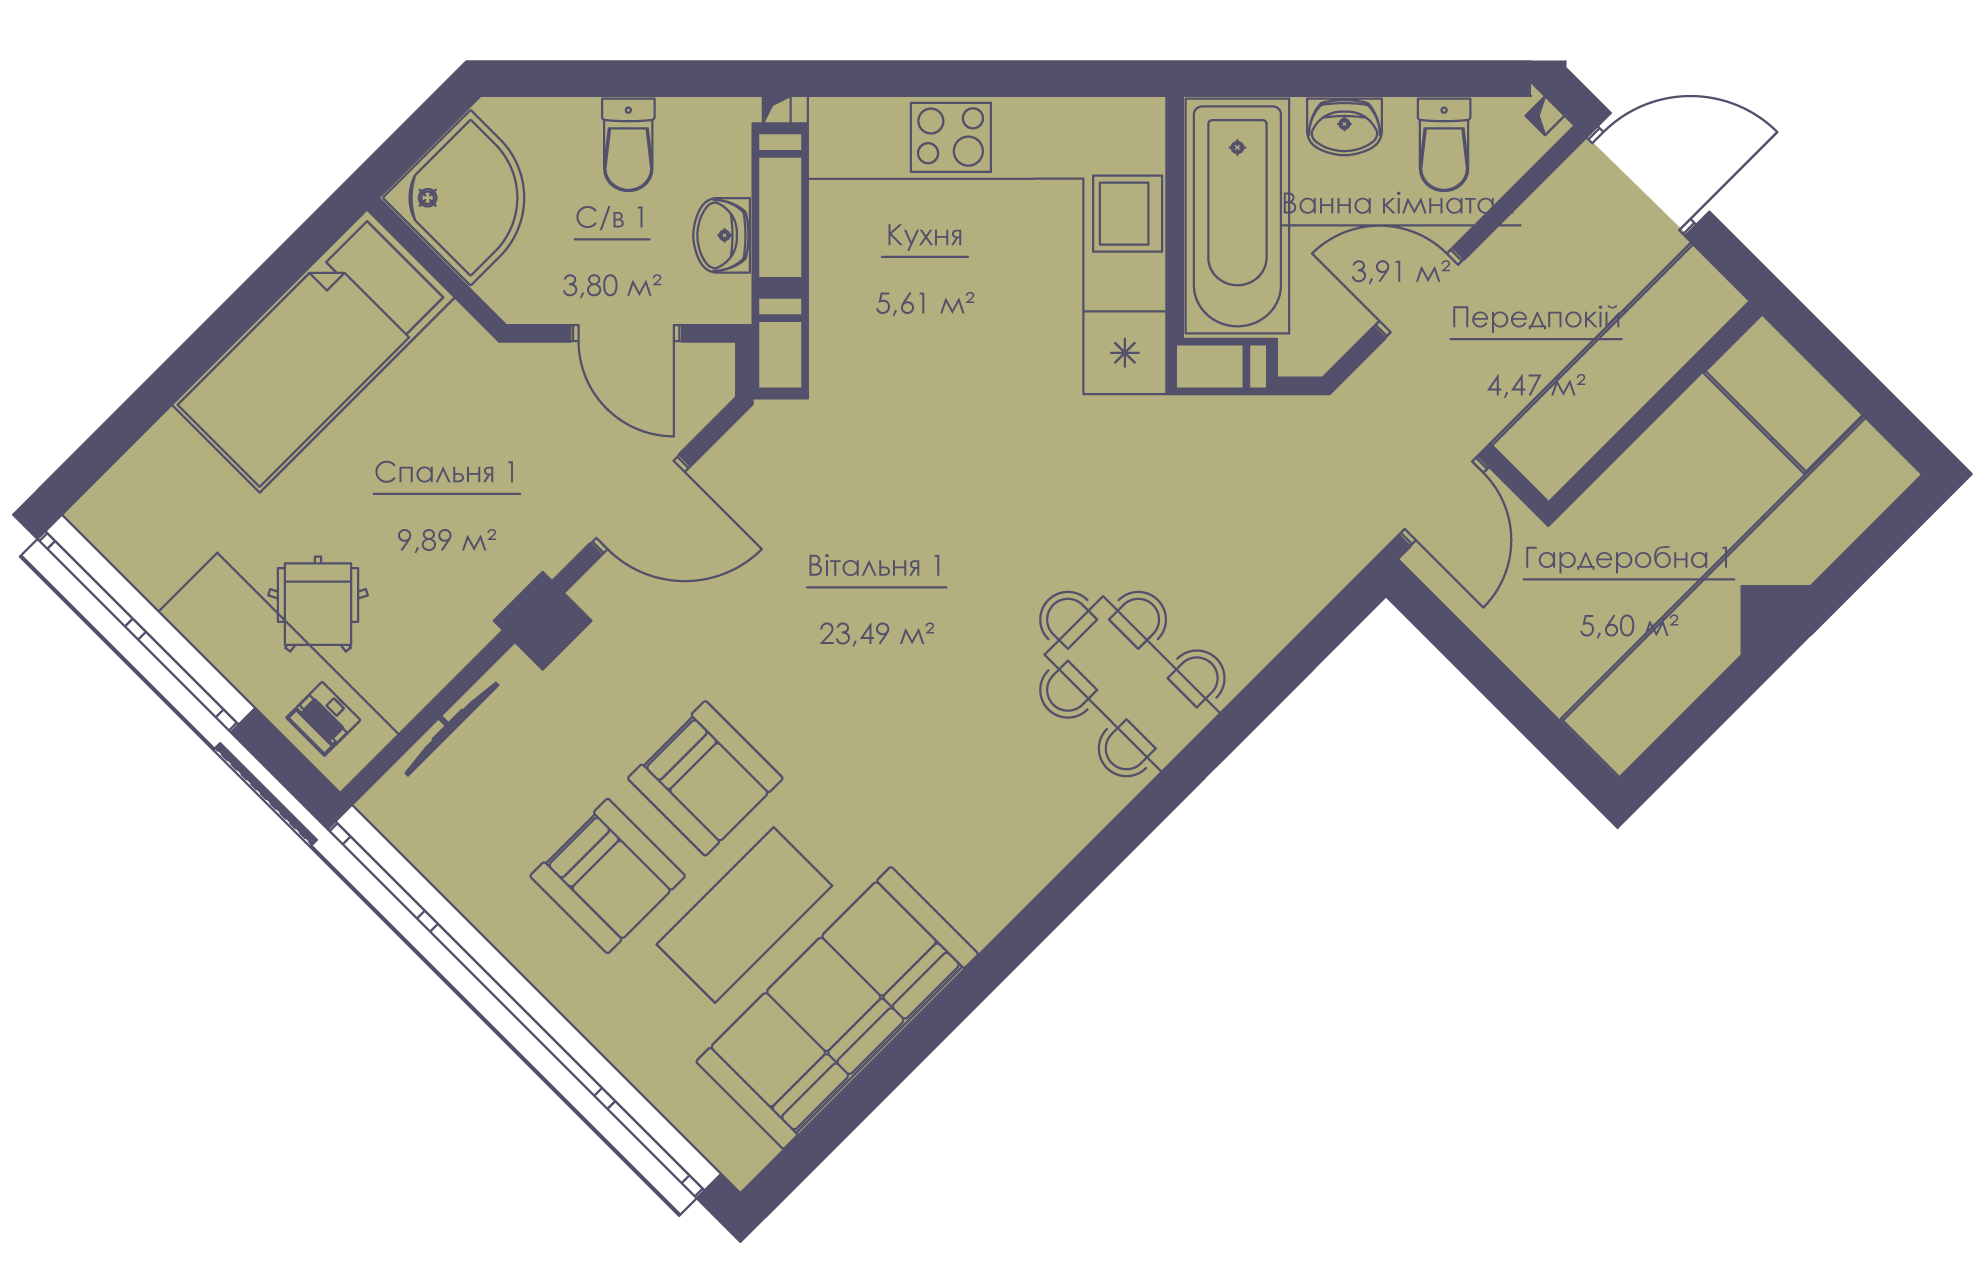 Apartment layout KV_16_1.2b_1_1_4-1